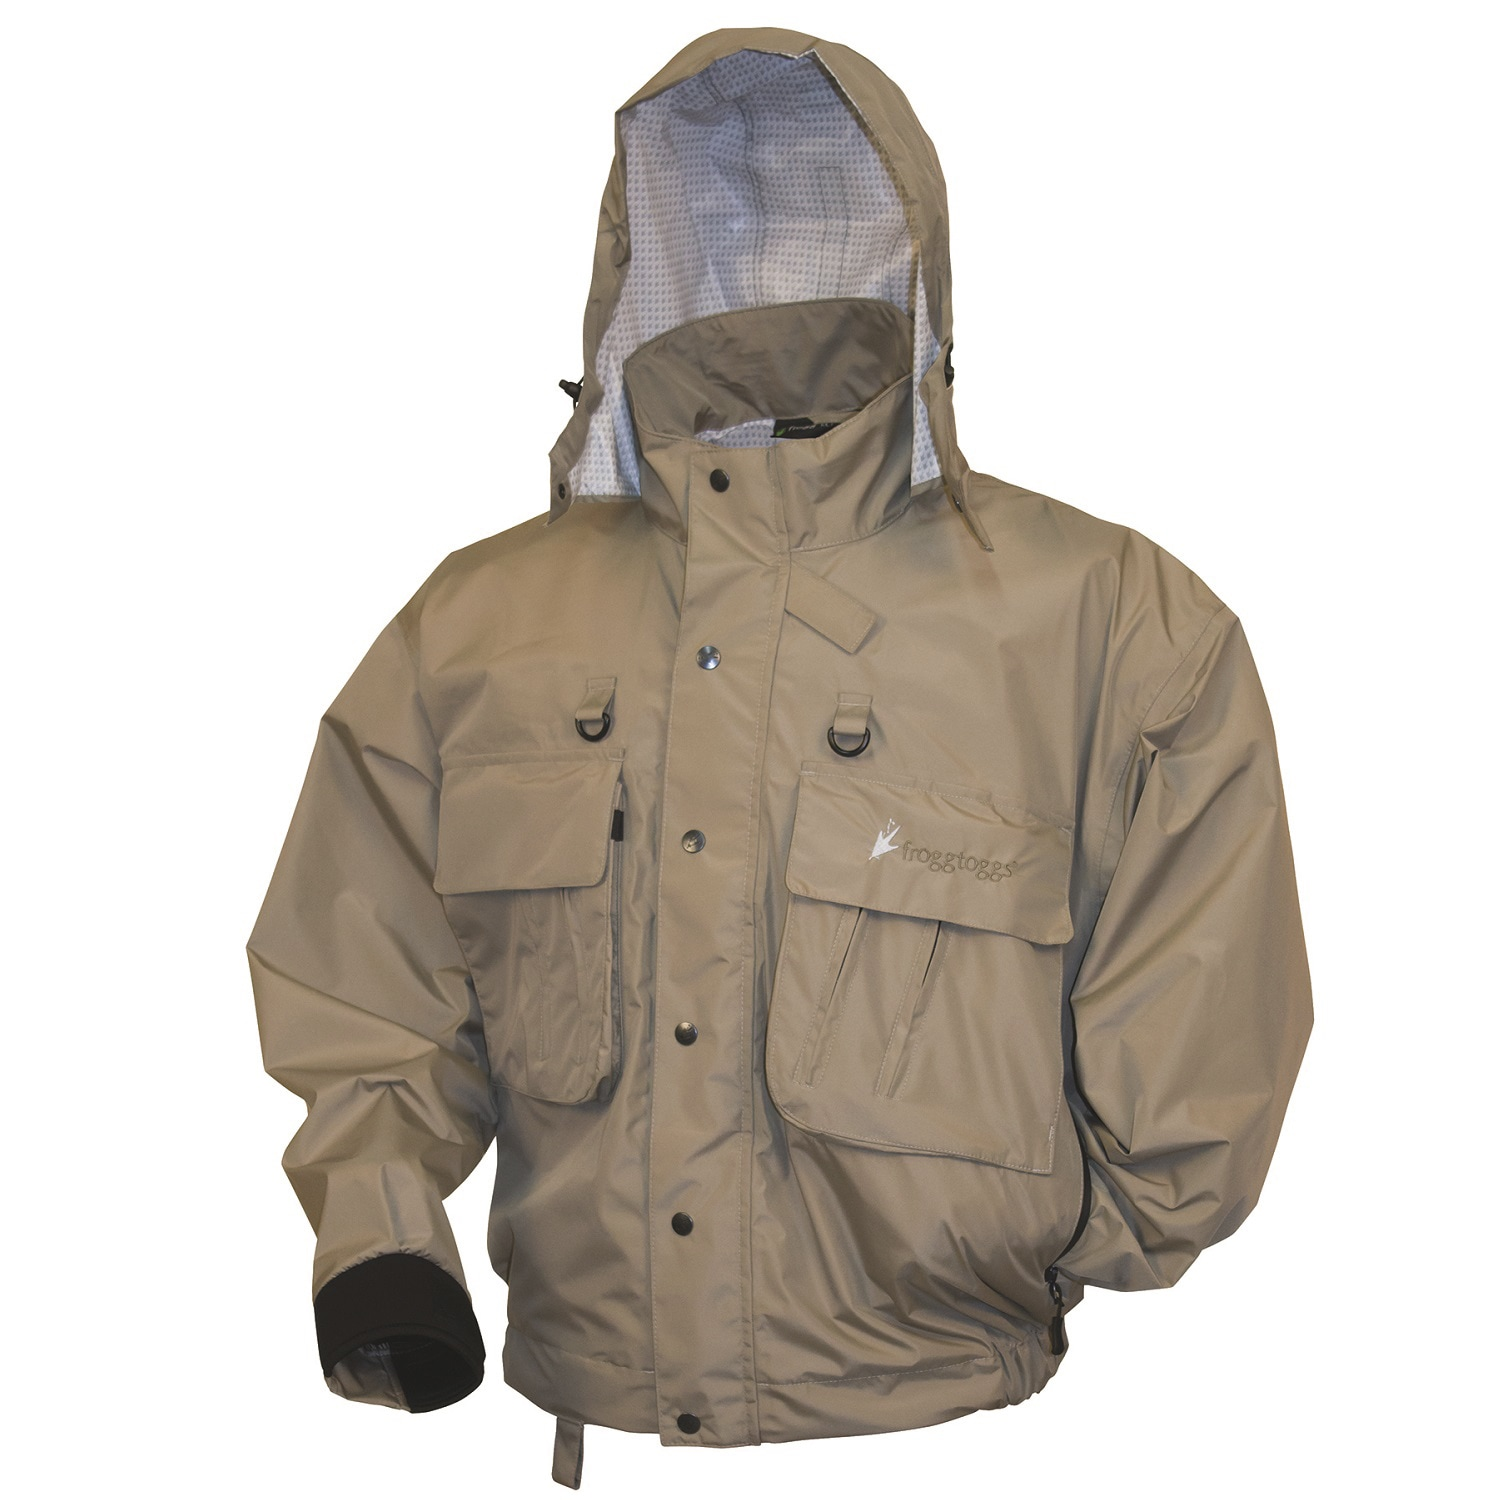 Frogg Toggs Hellbender Stone (Grey) Fly and Wading Jacket...